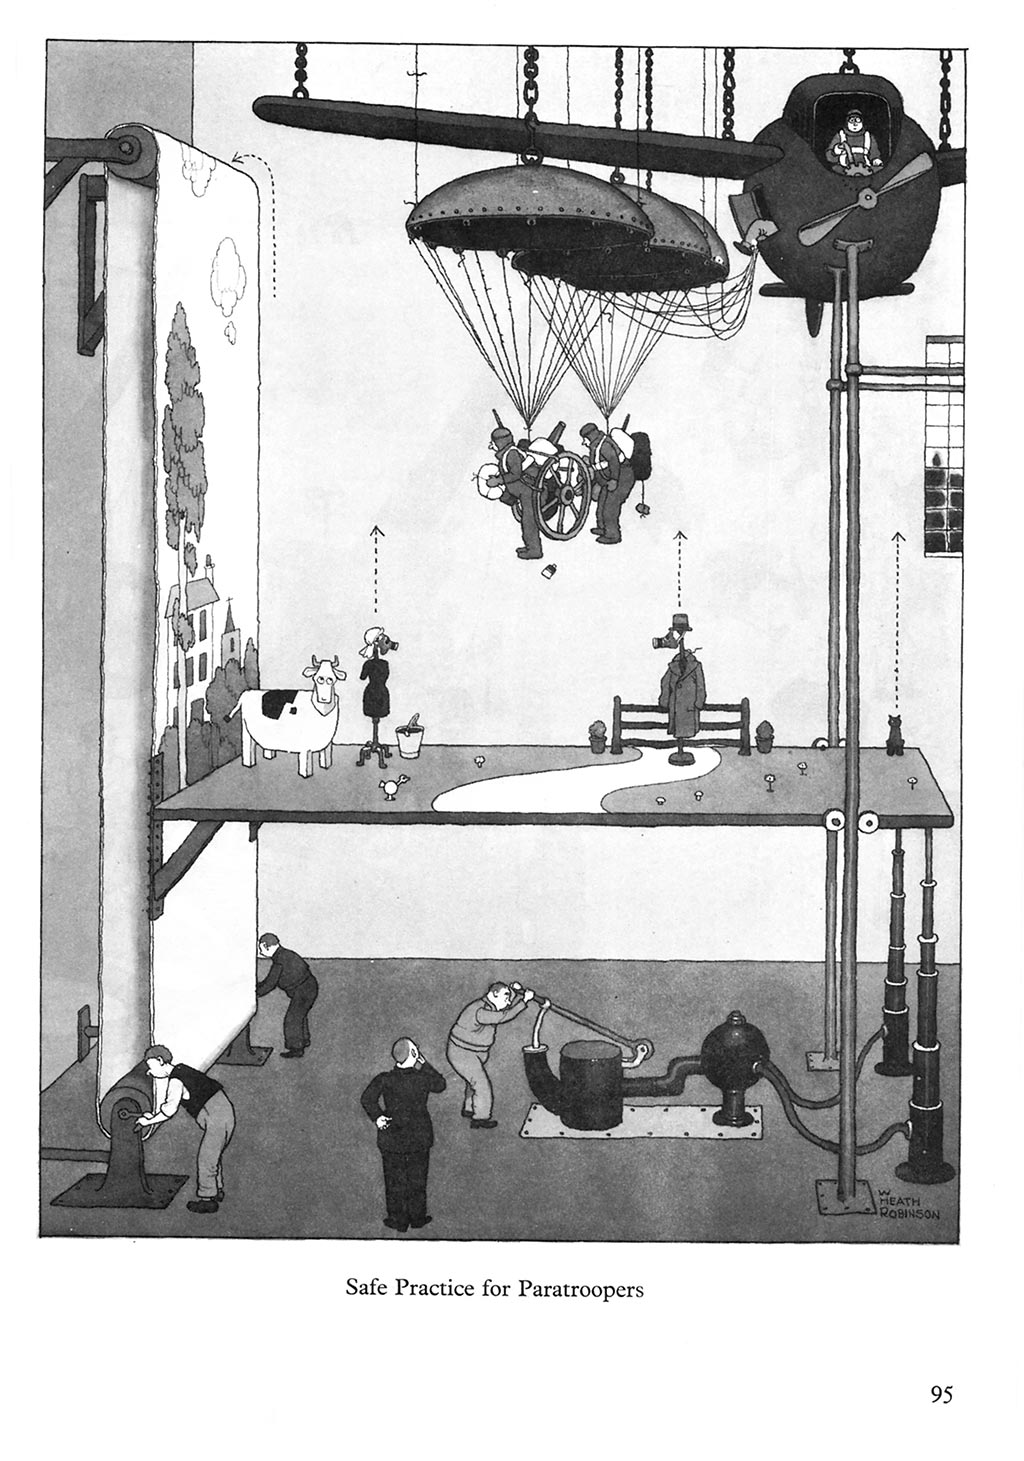 william_heath_robinson_inventions_-_page_095